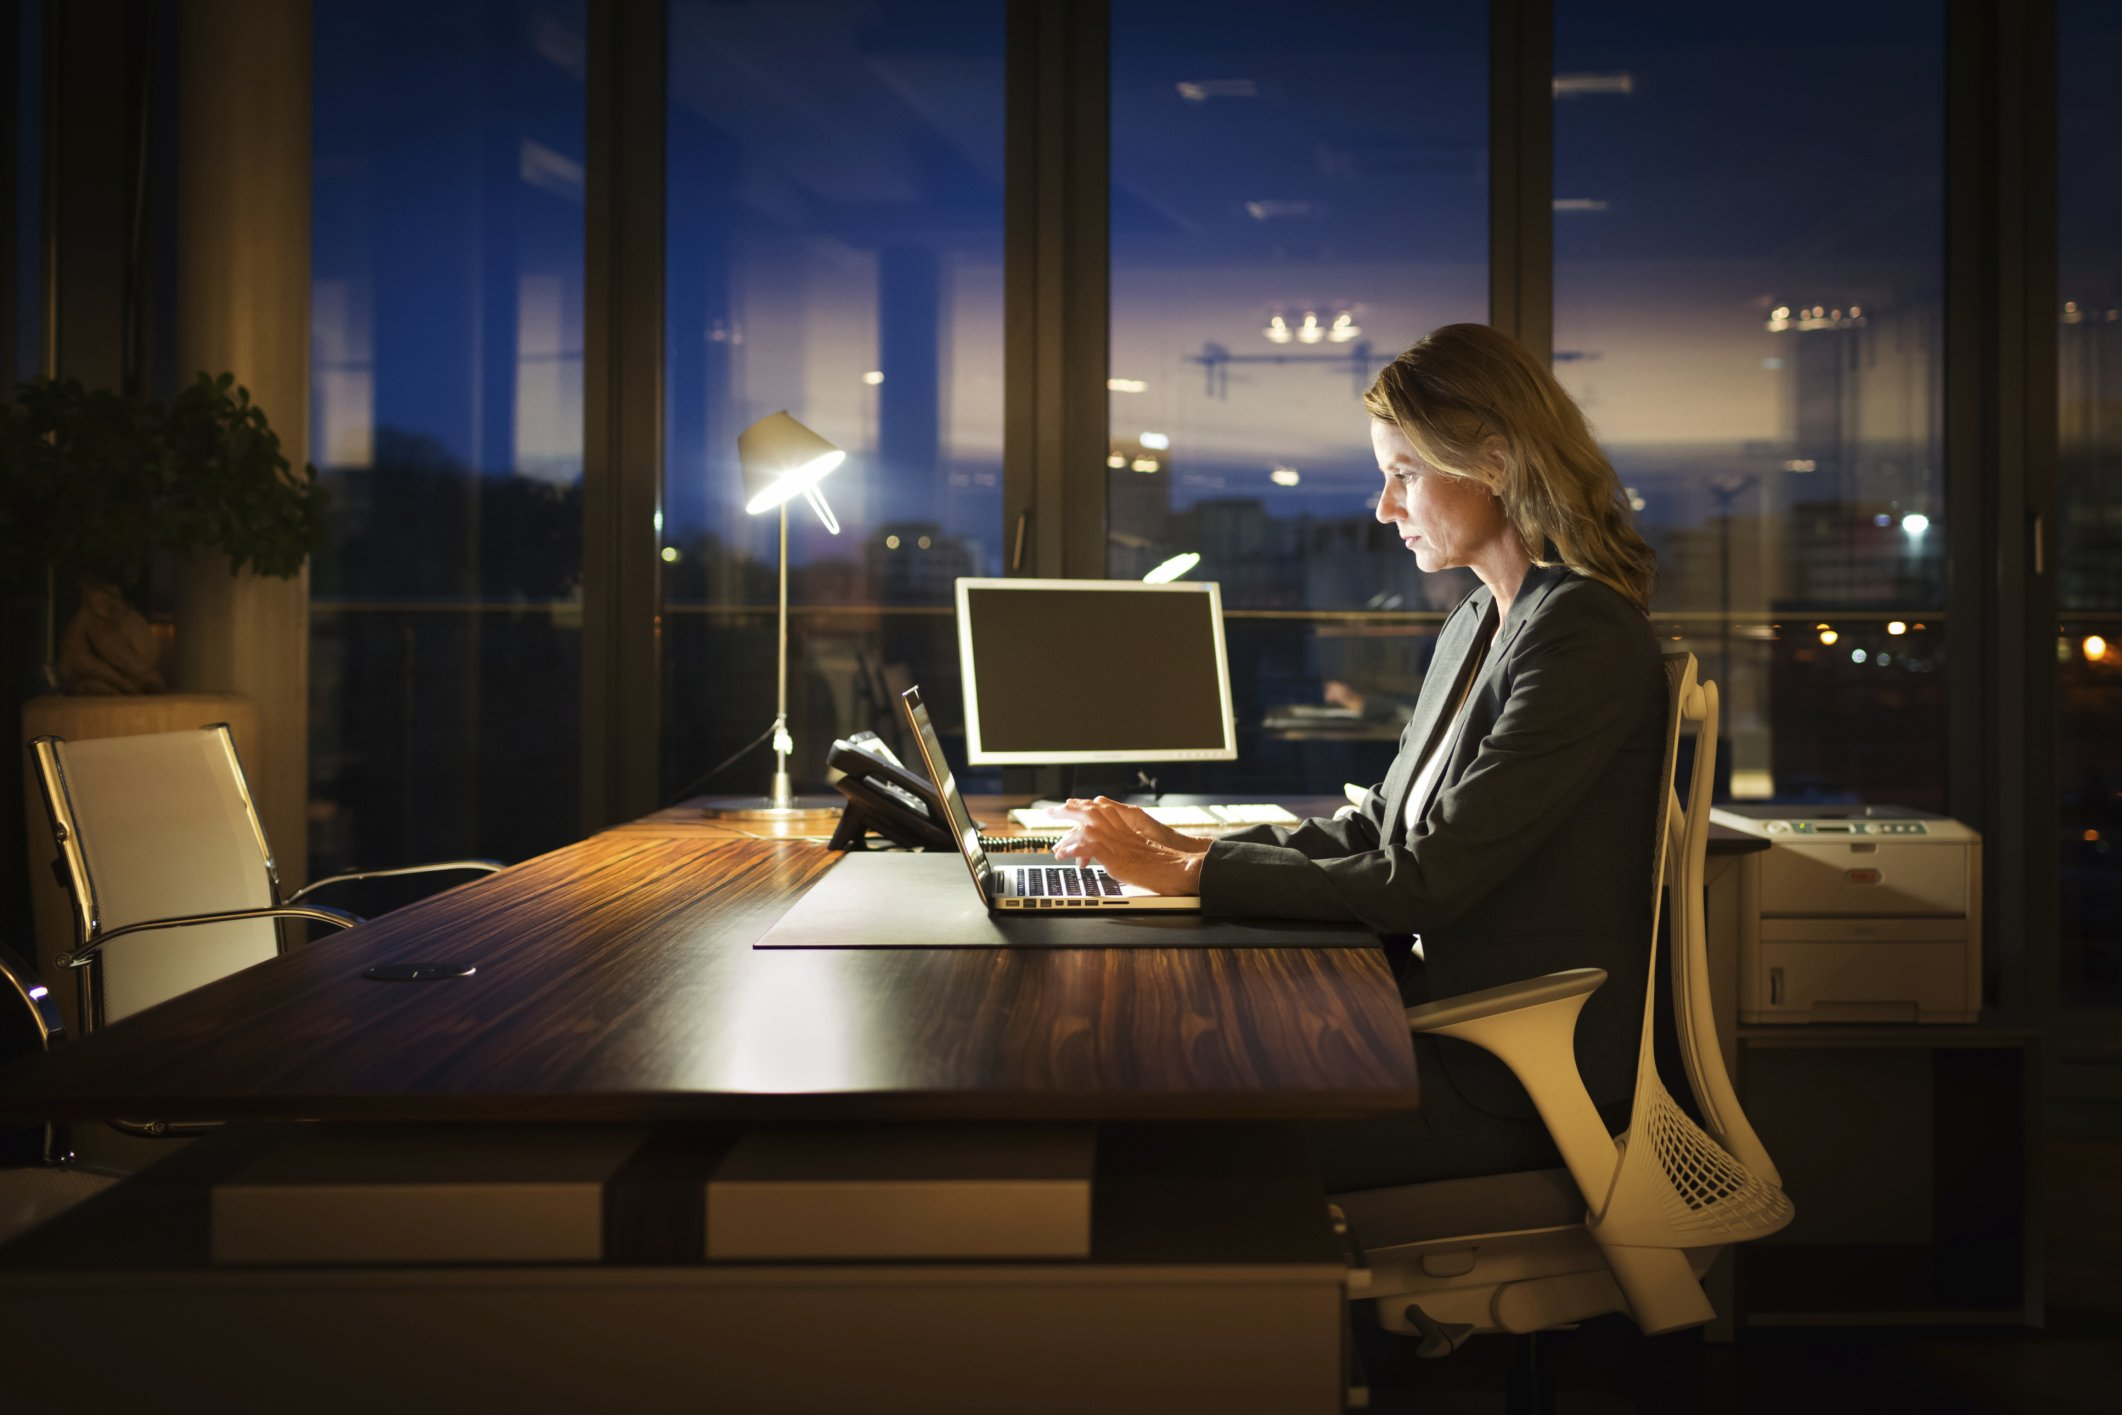 five ways to beat workplace stress virgin is work related stress or anxiety the biggest threat to your health and workplace wellness many of us will be familiar the symptoms of being